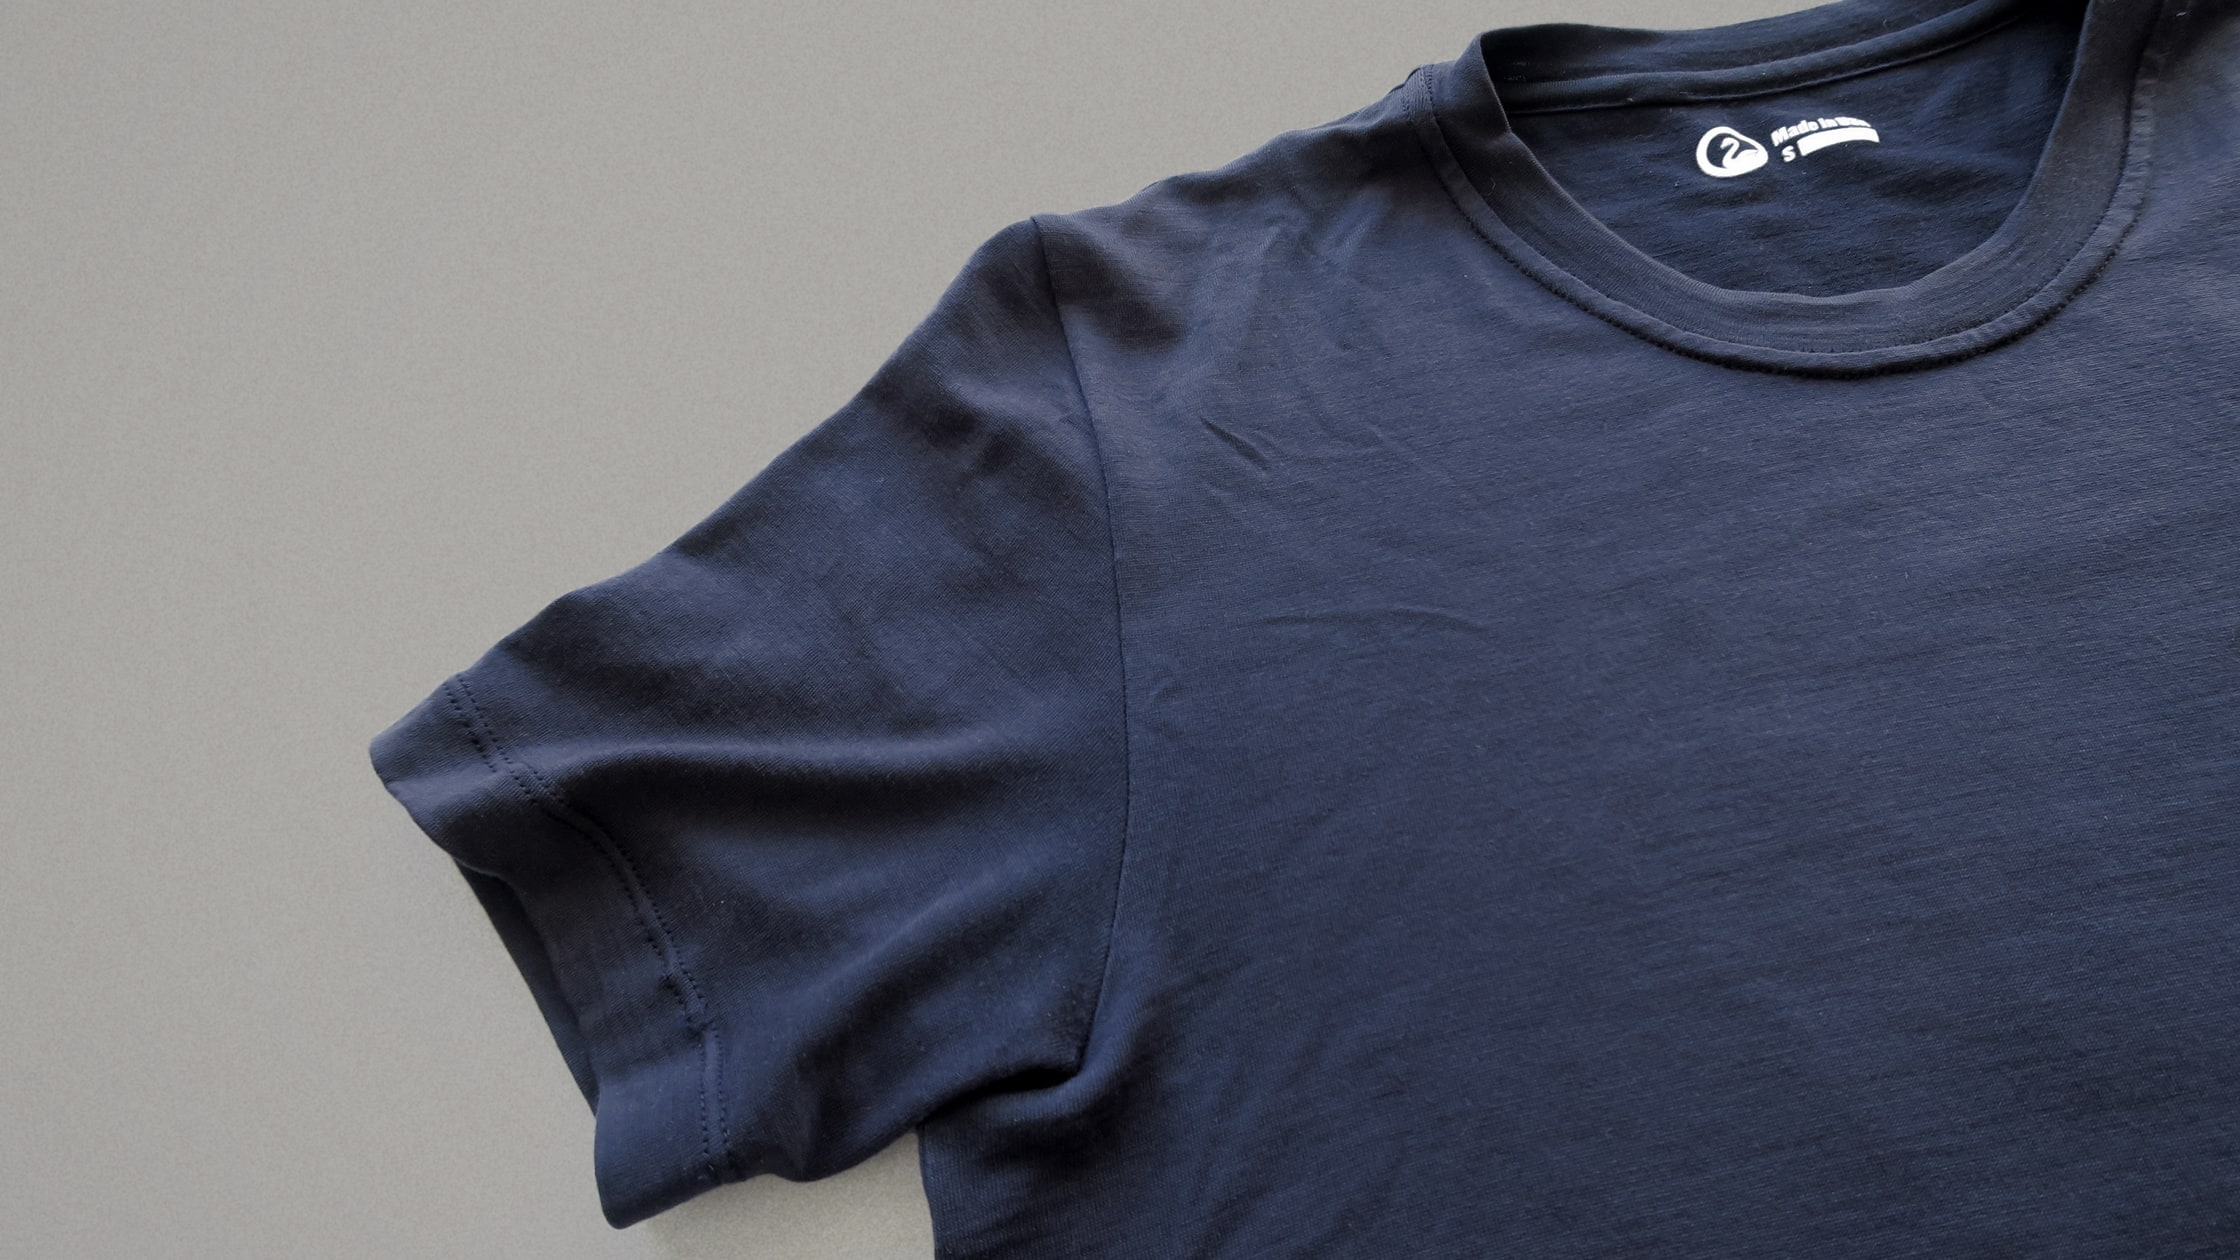 Outlier Ultrafine Merino T-Shirt Detail